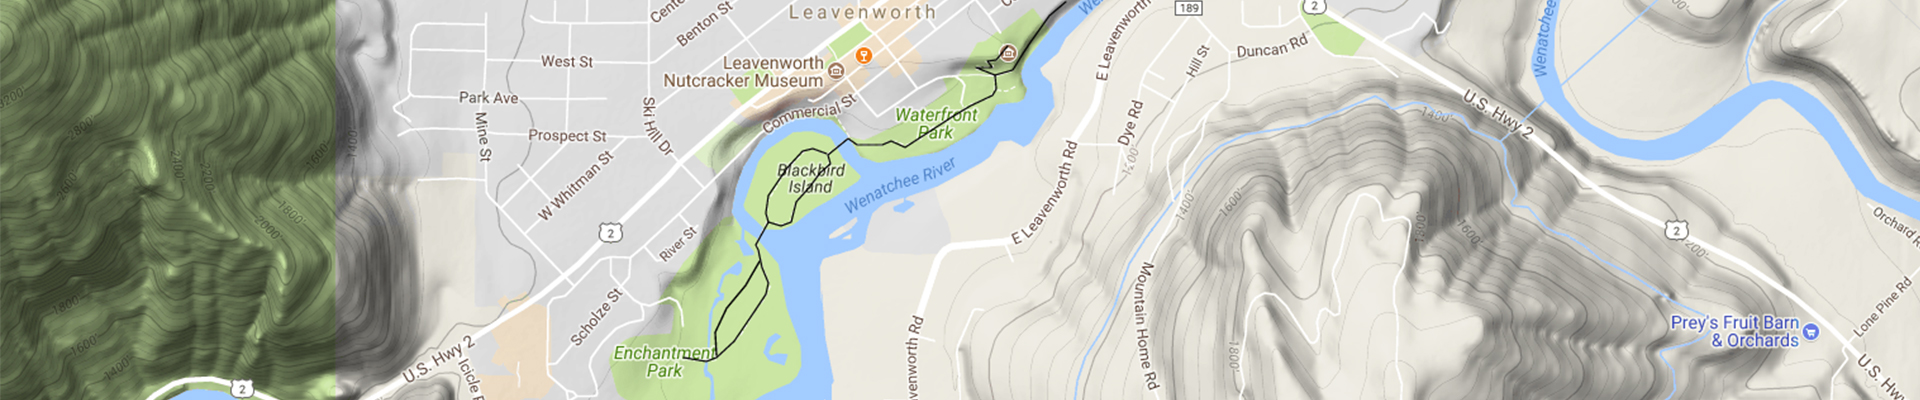 waterfront park map